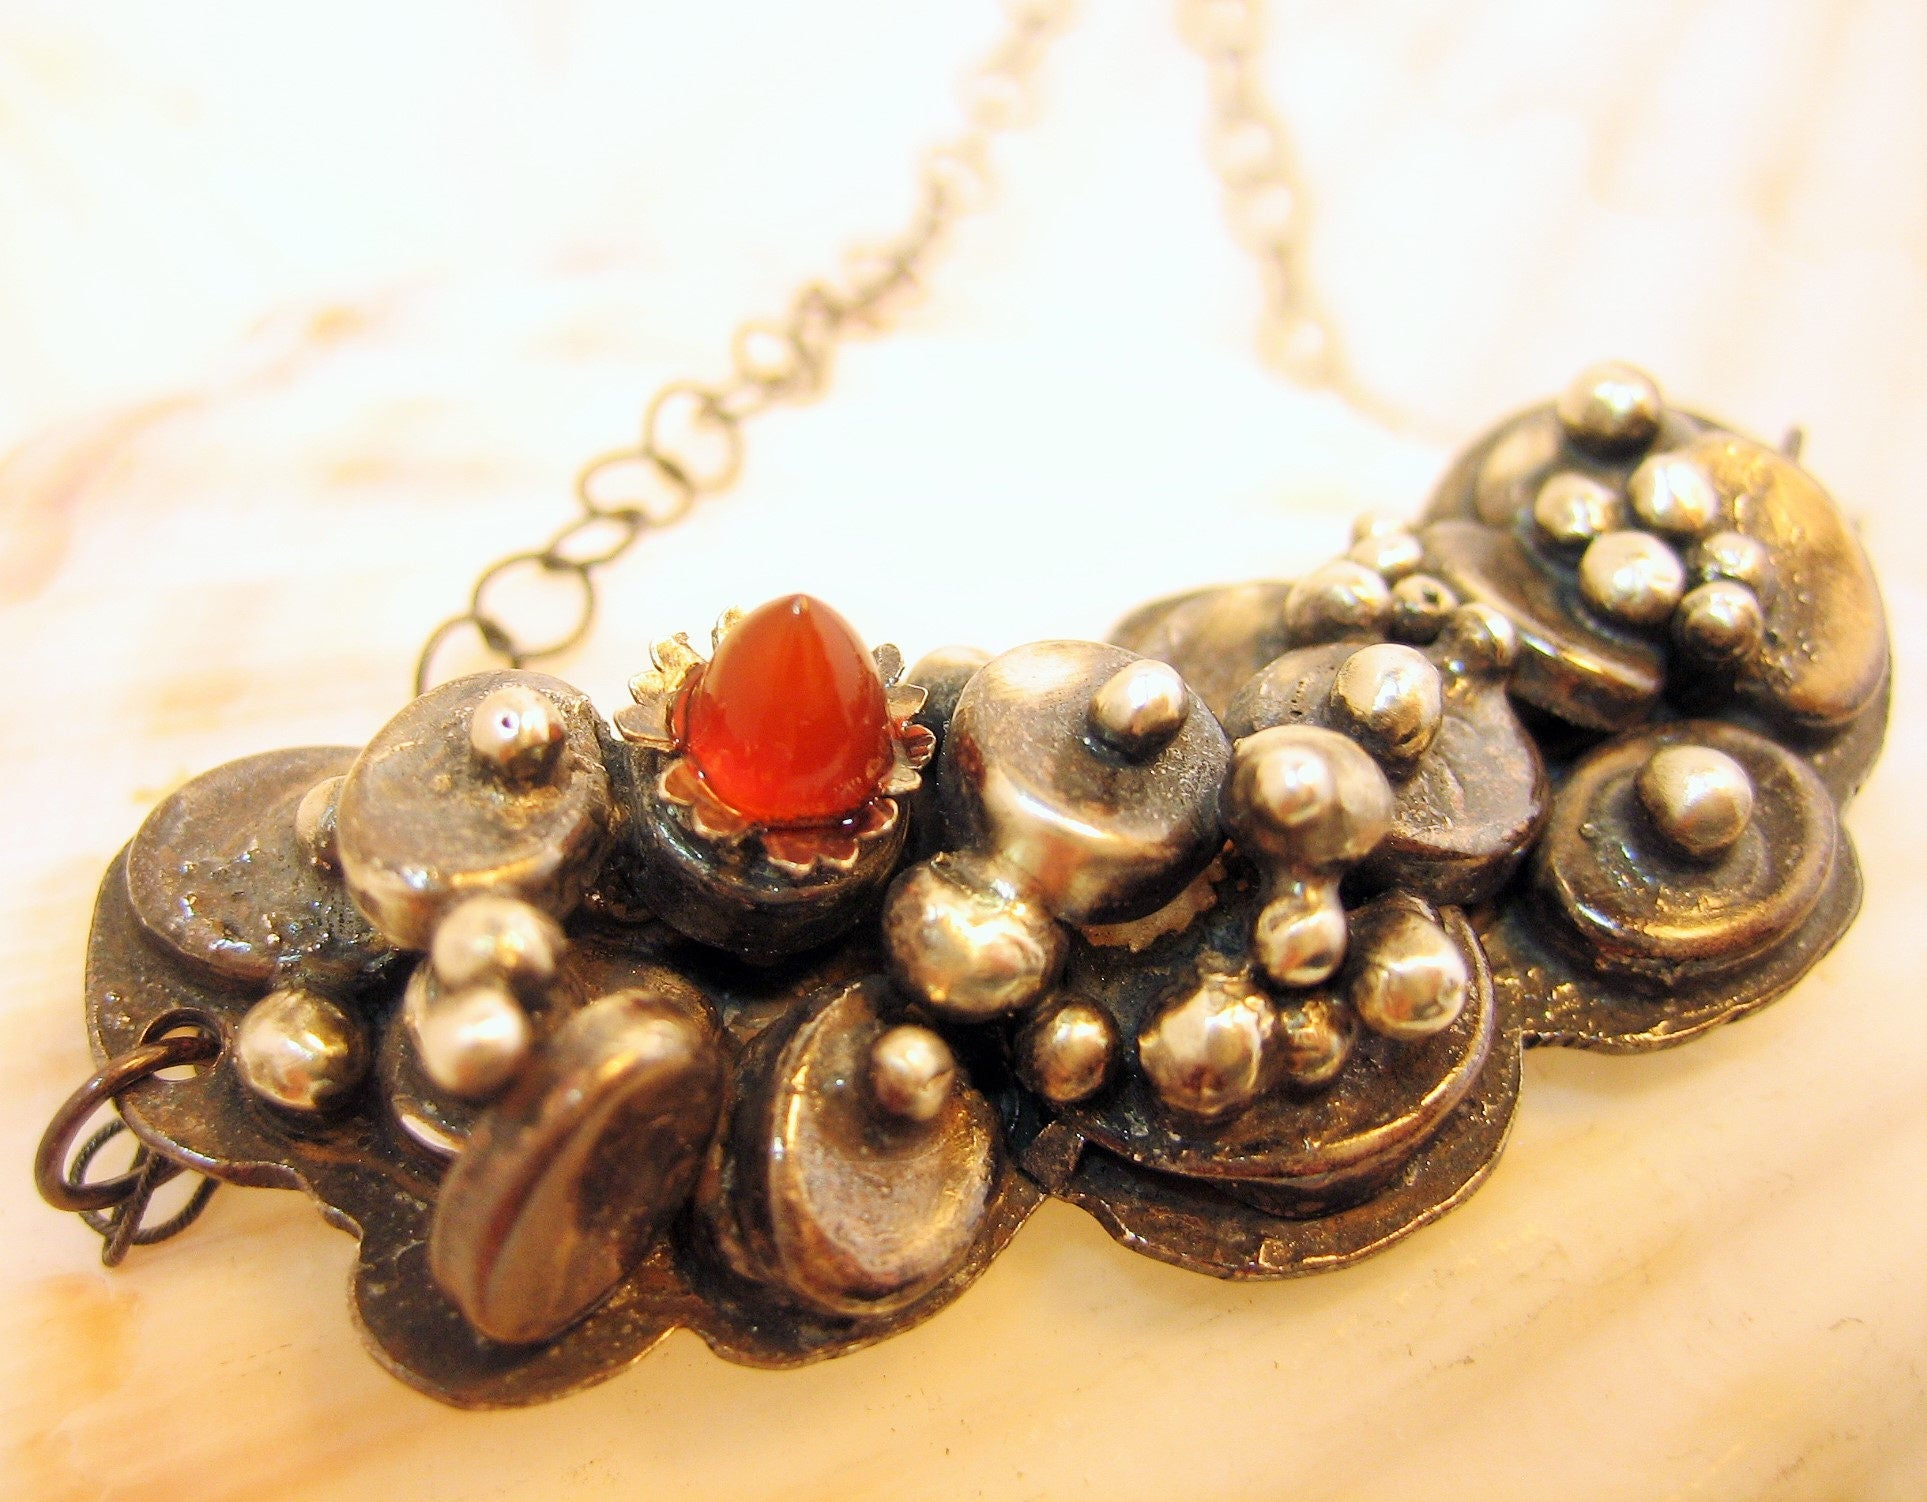 Blackened silver pod necklace with red carnelian, blackened silver artisan necklace, pod necklace, barnacle necklace, black and red necklace